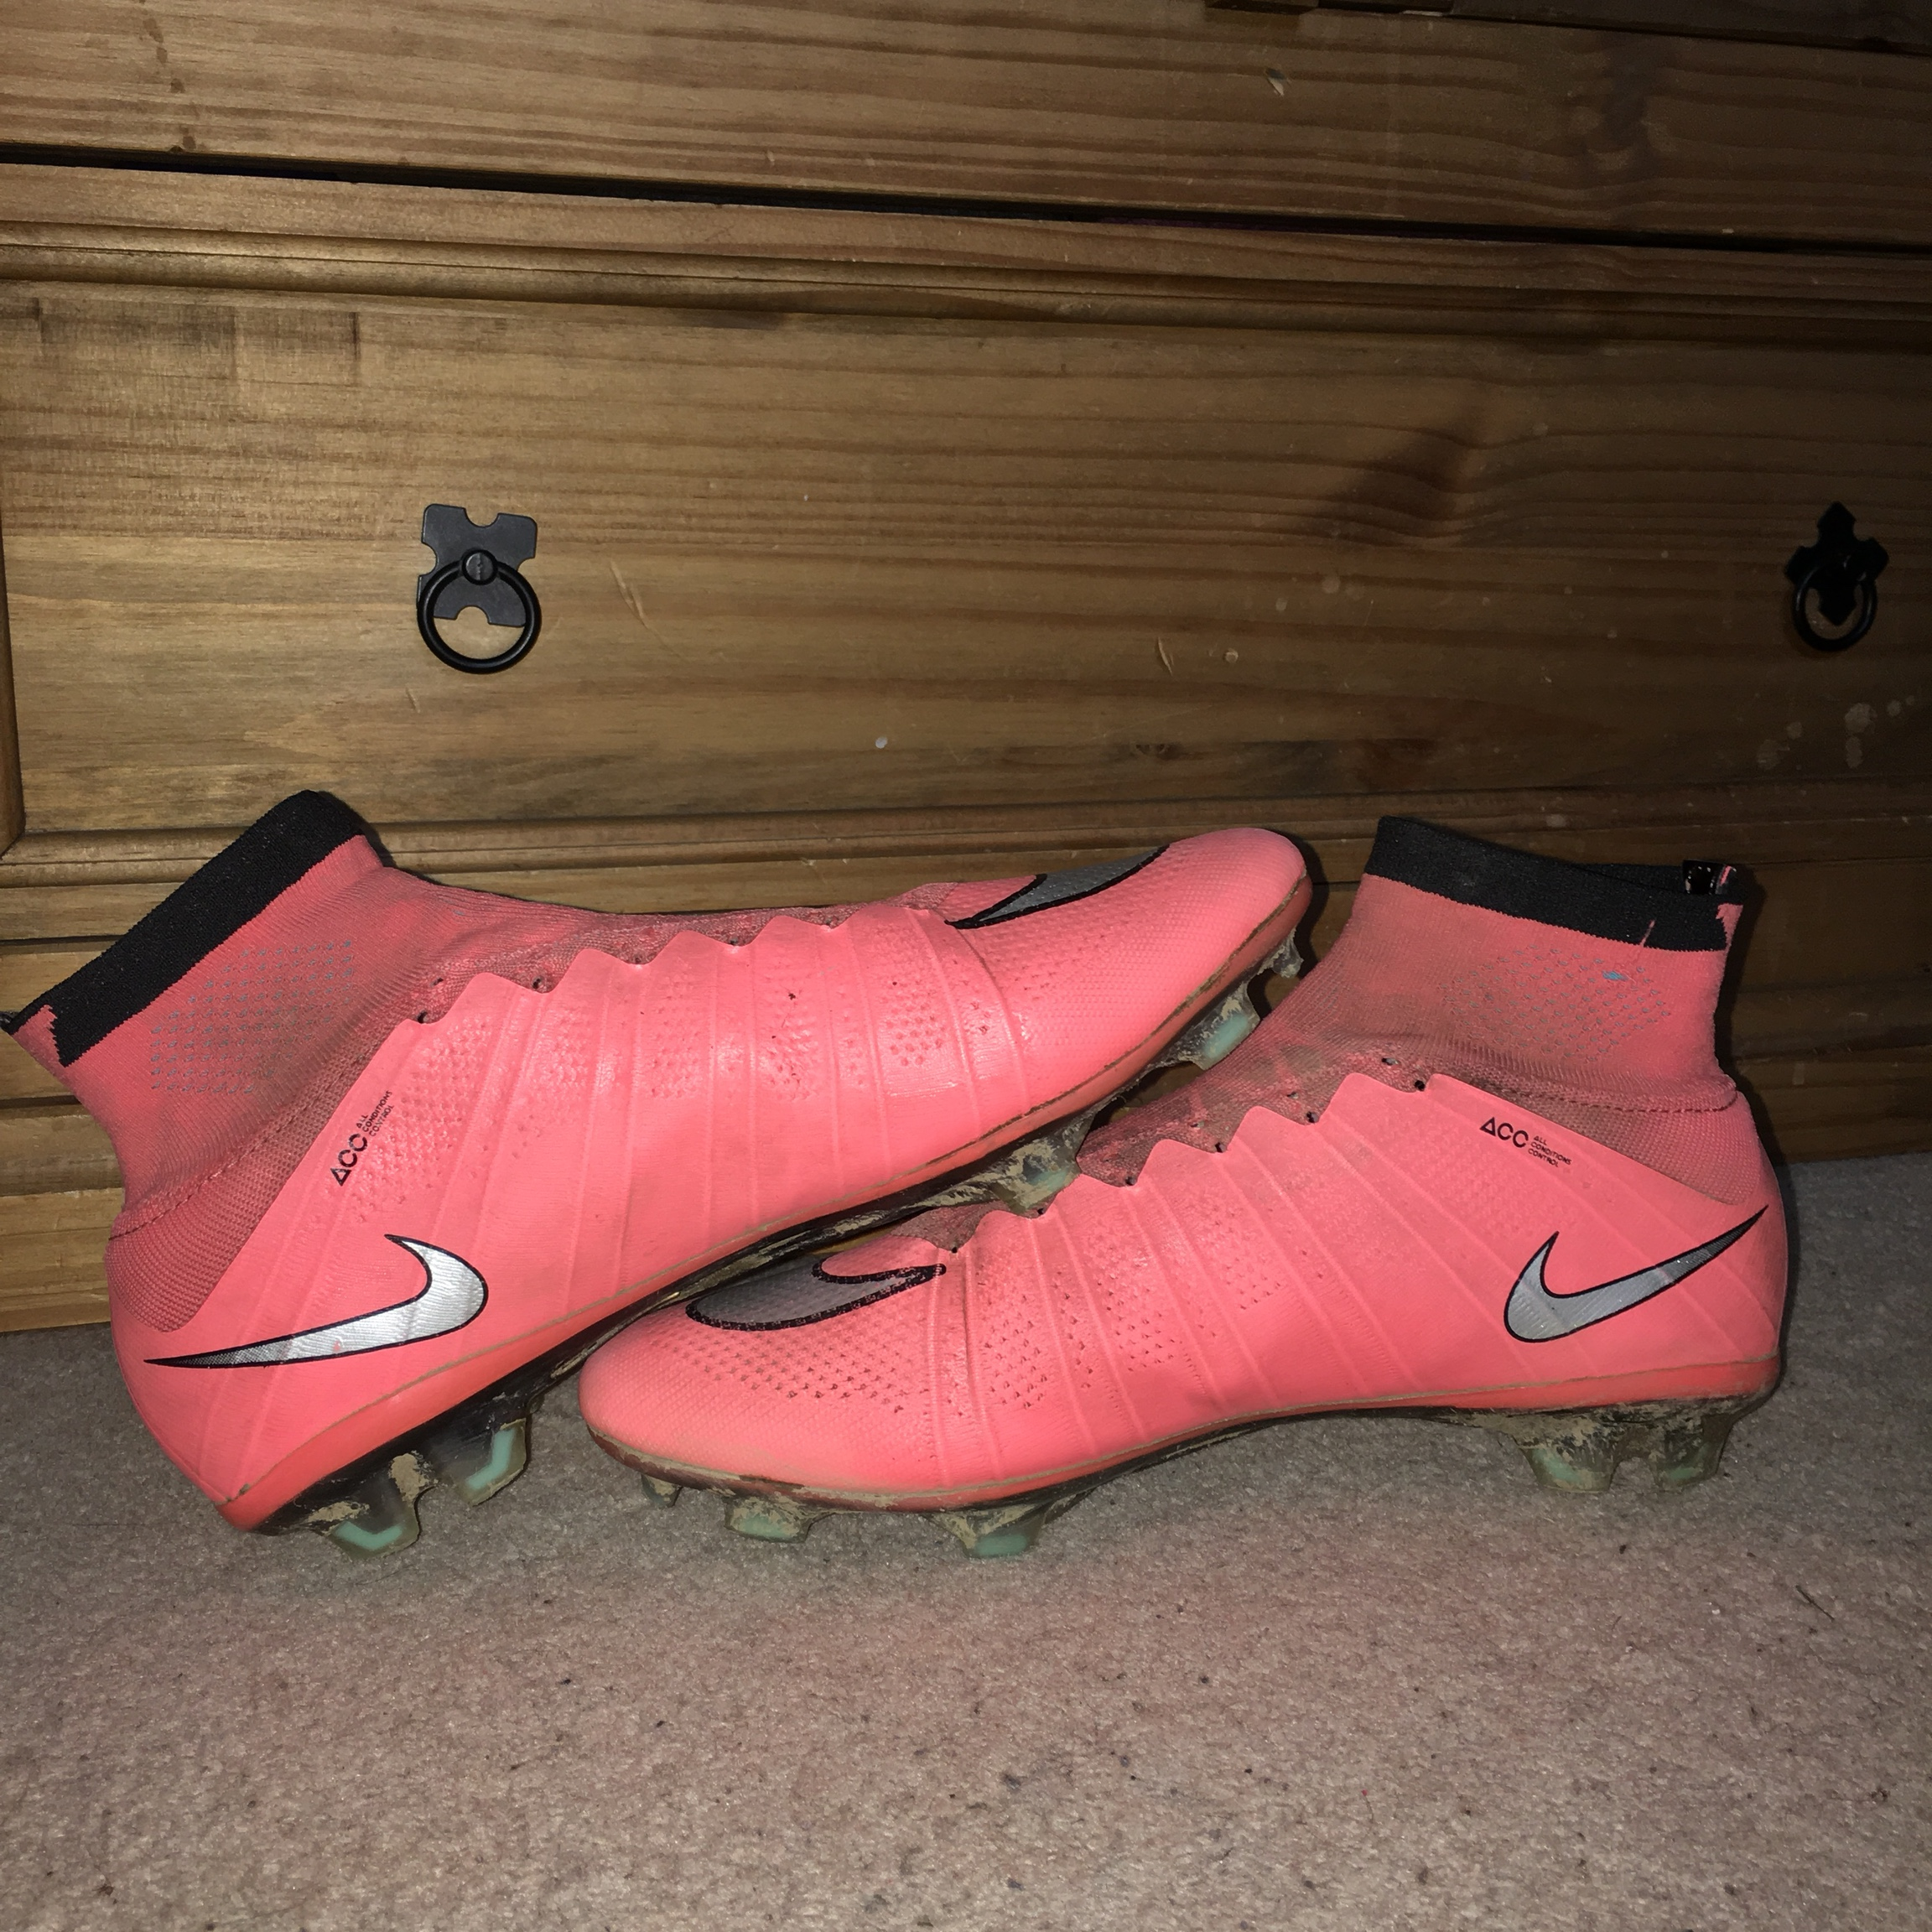 cheap for discount ff611 e5f24 Nike Mercurial Superfly 4 Pink, UK 10 Retail price... - Depop